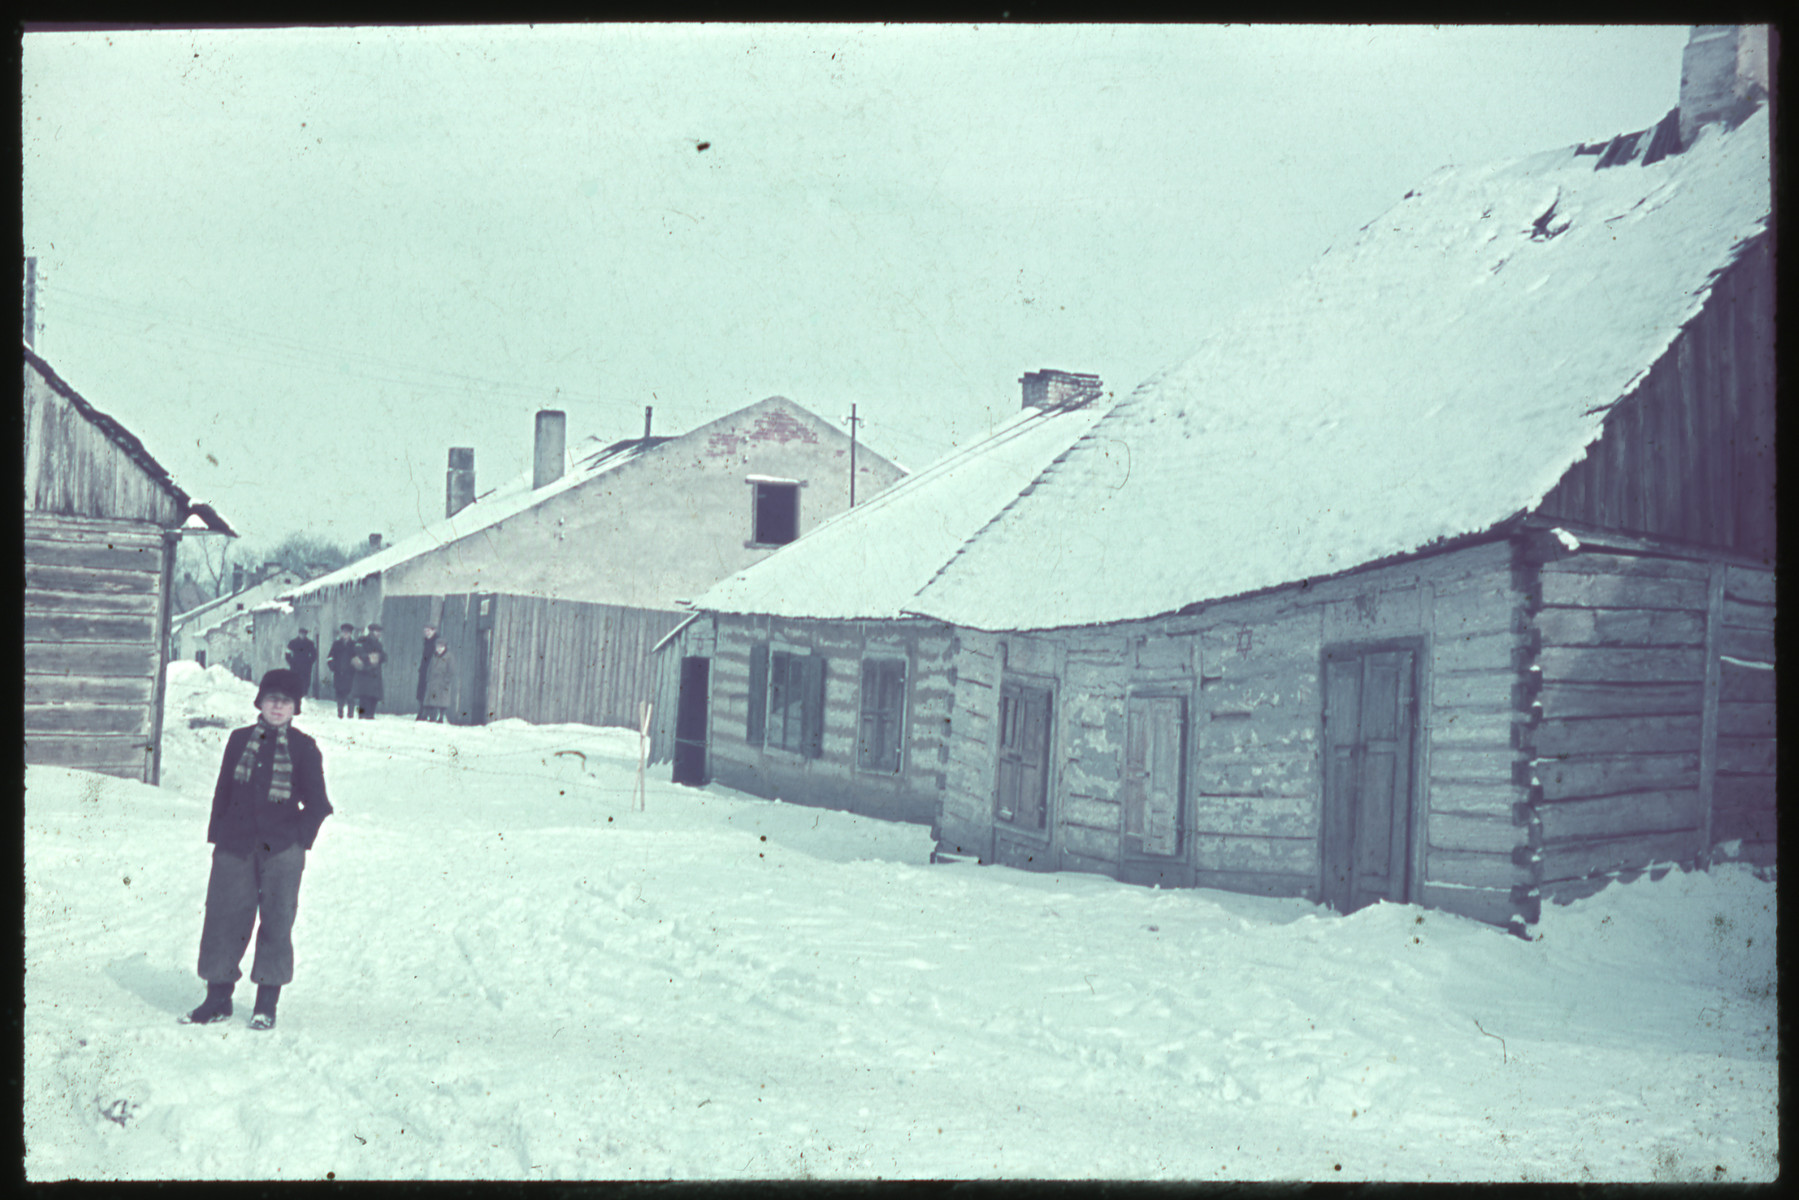 A young boy stands on a snowy road next to a building marked with a Jewish star on its exterior wall while men wearing armbands gather in the background.